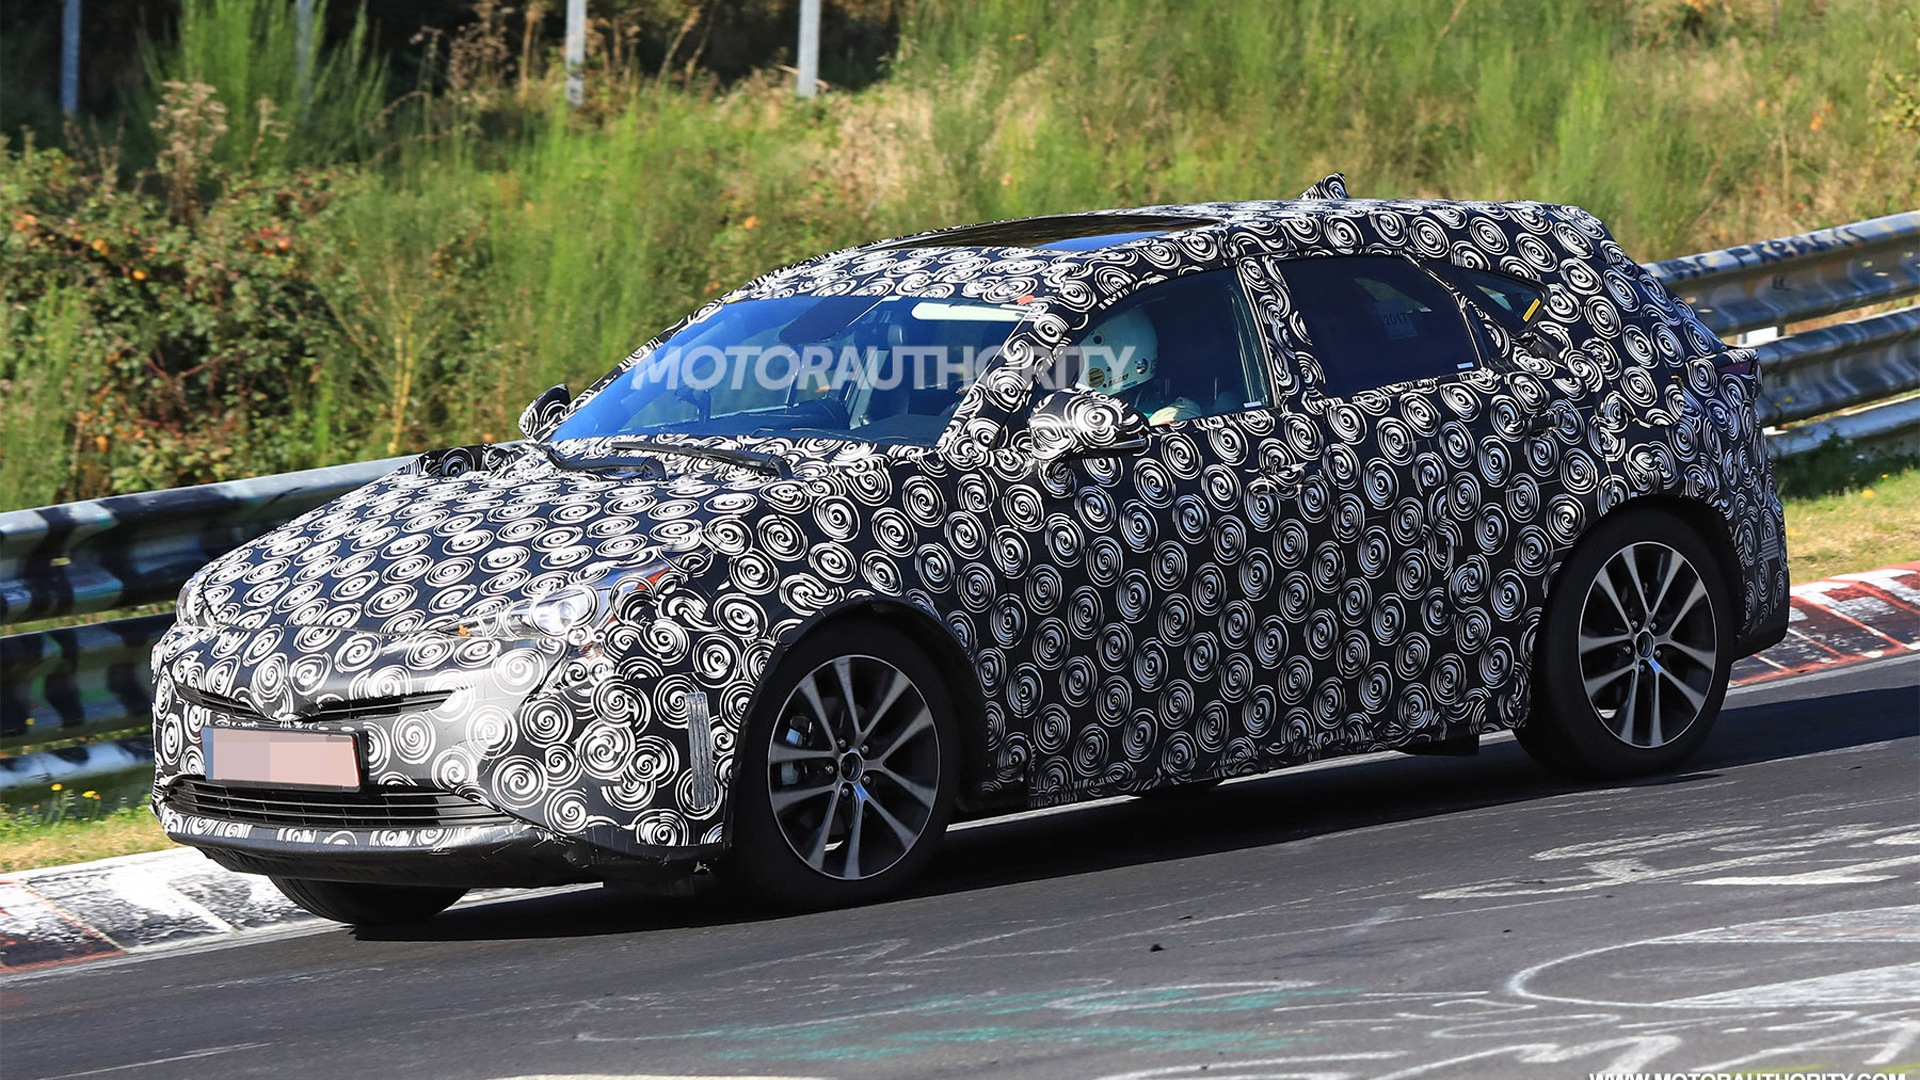 81 The 2020 Spy Shots Toyota Prius Reviews